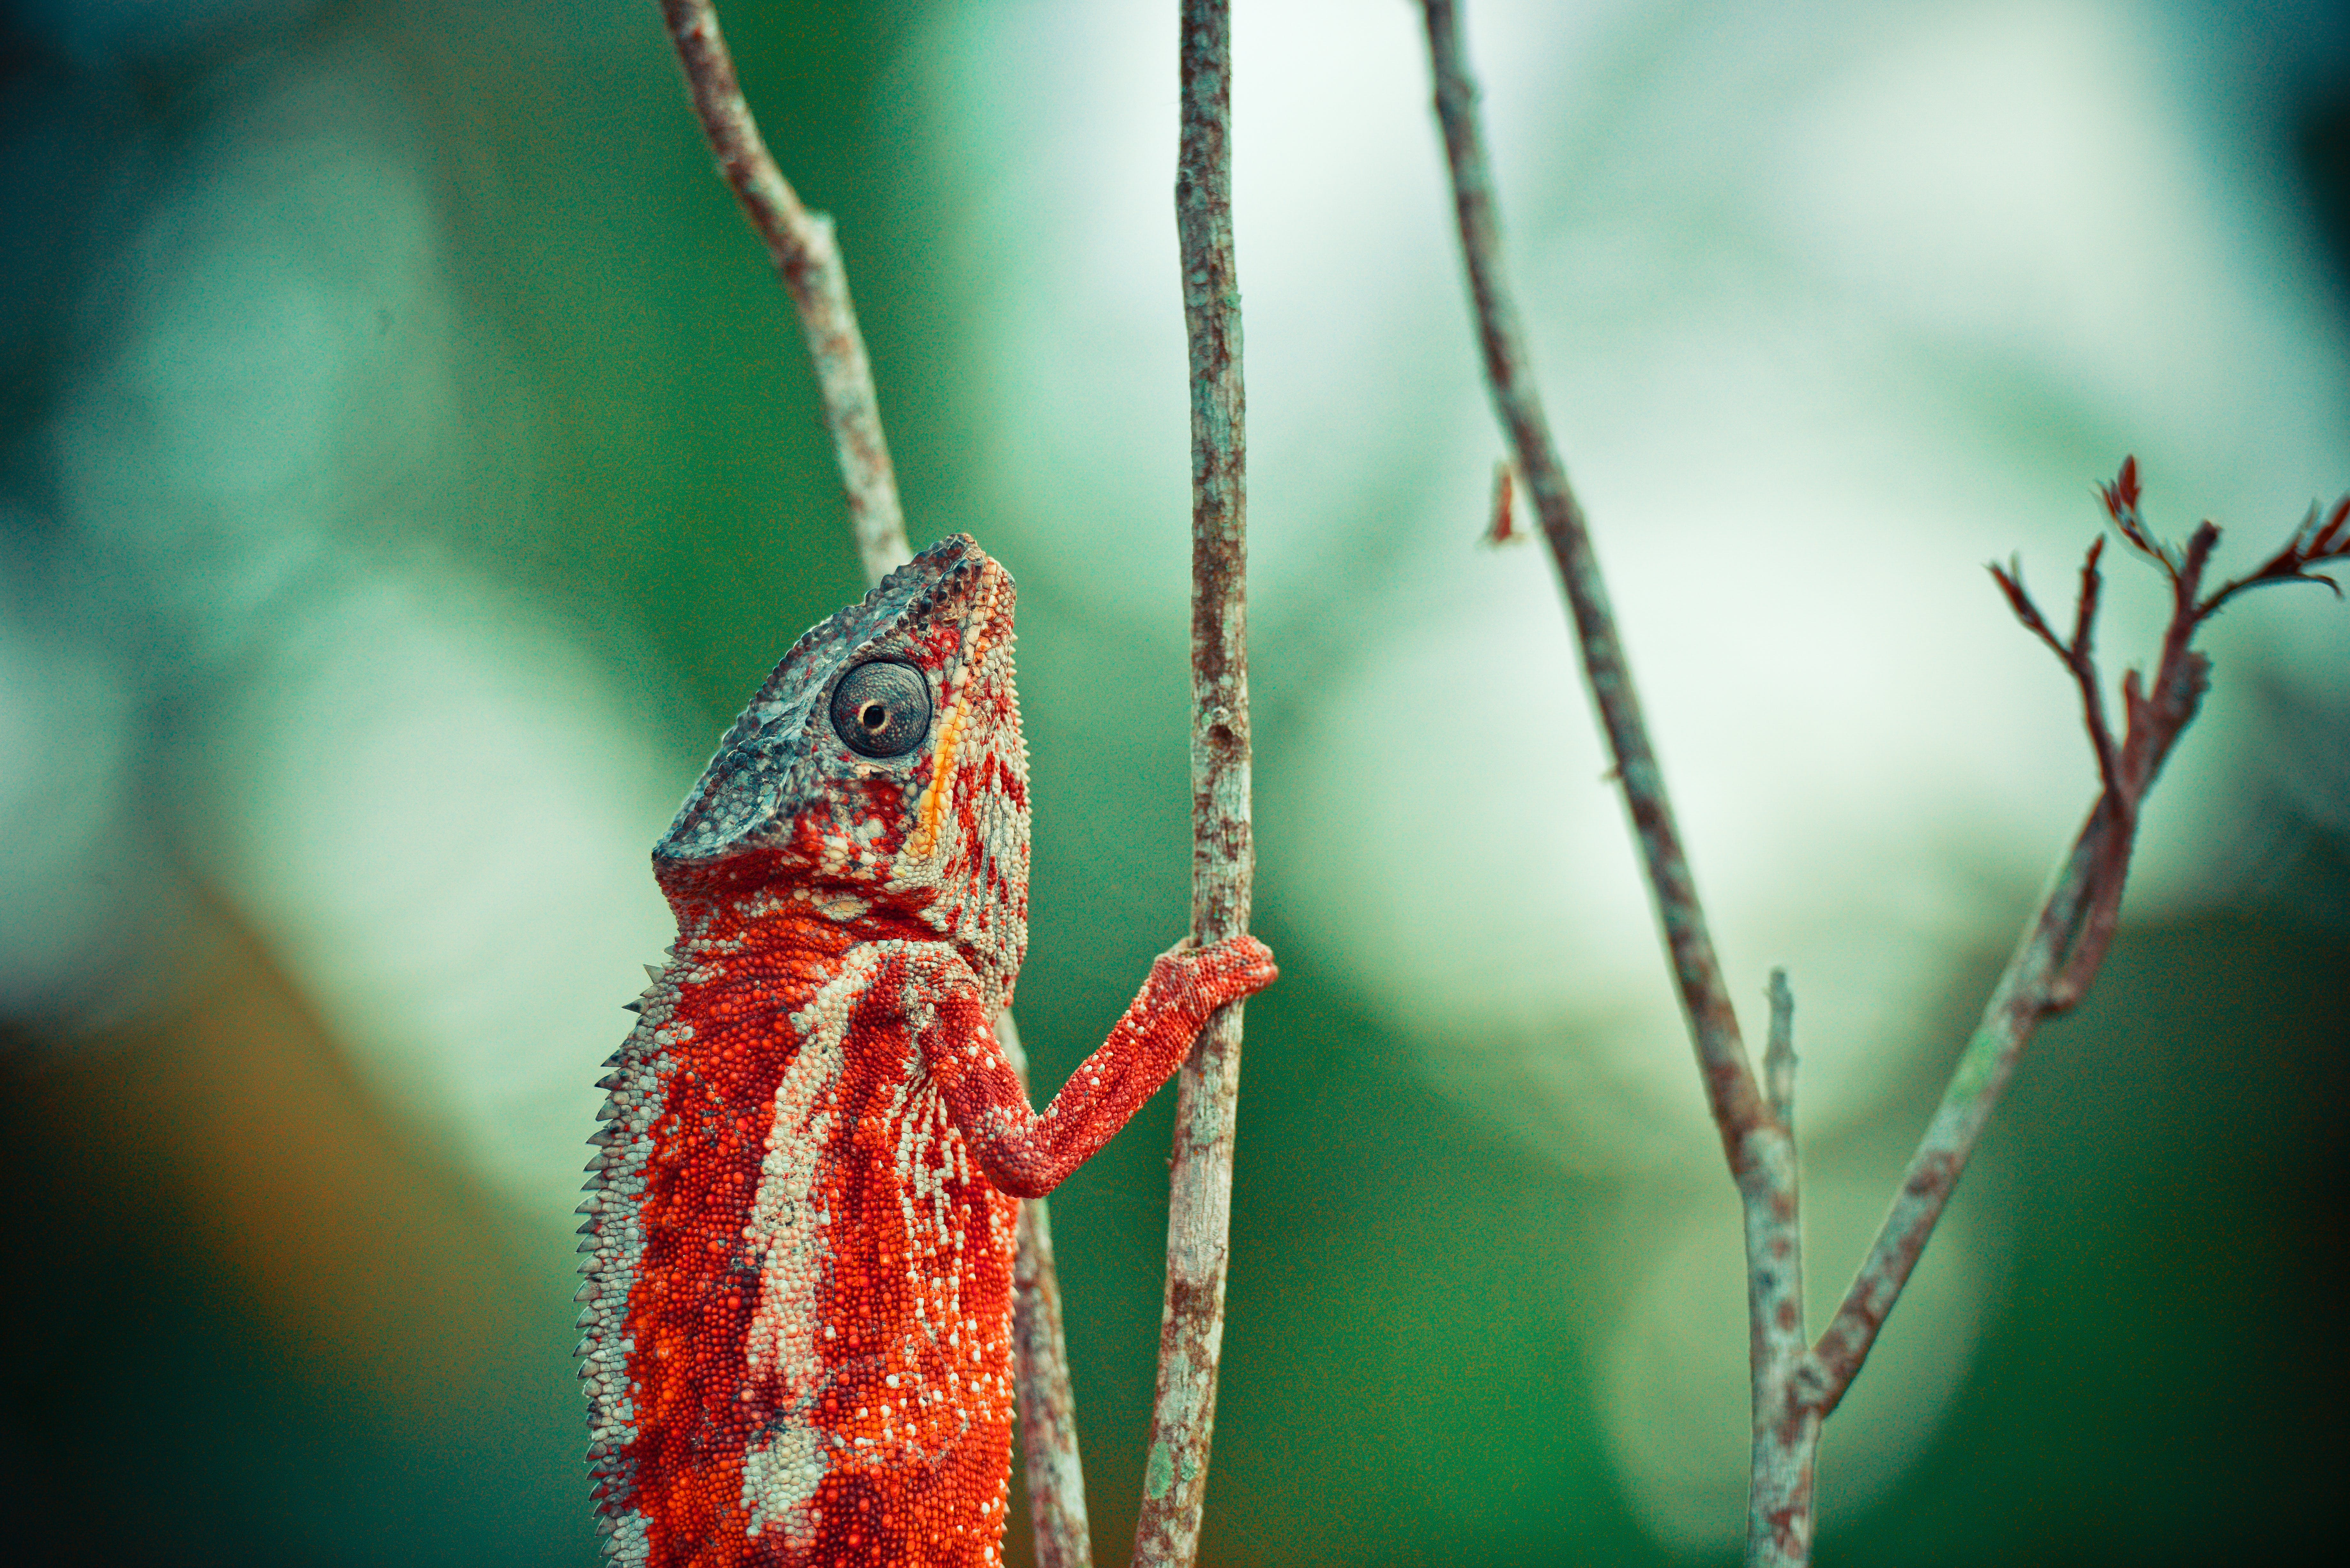 Red and Beige Chameleon on Twig